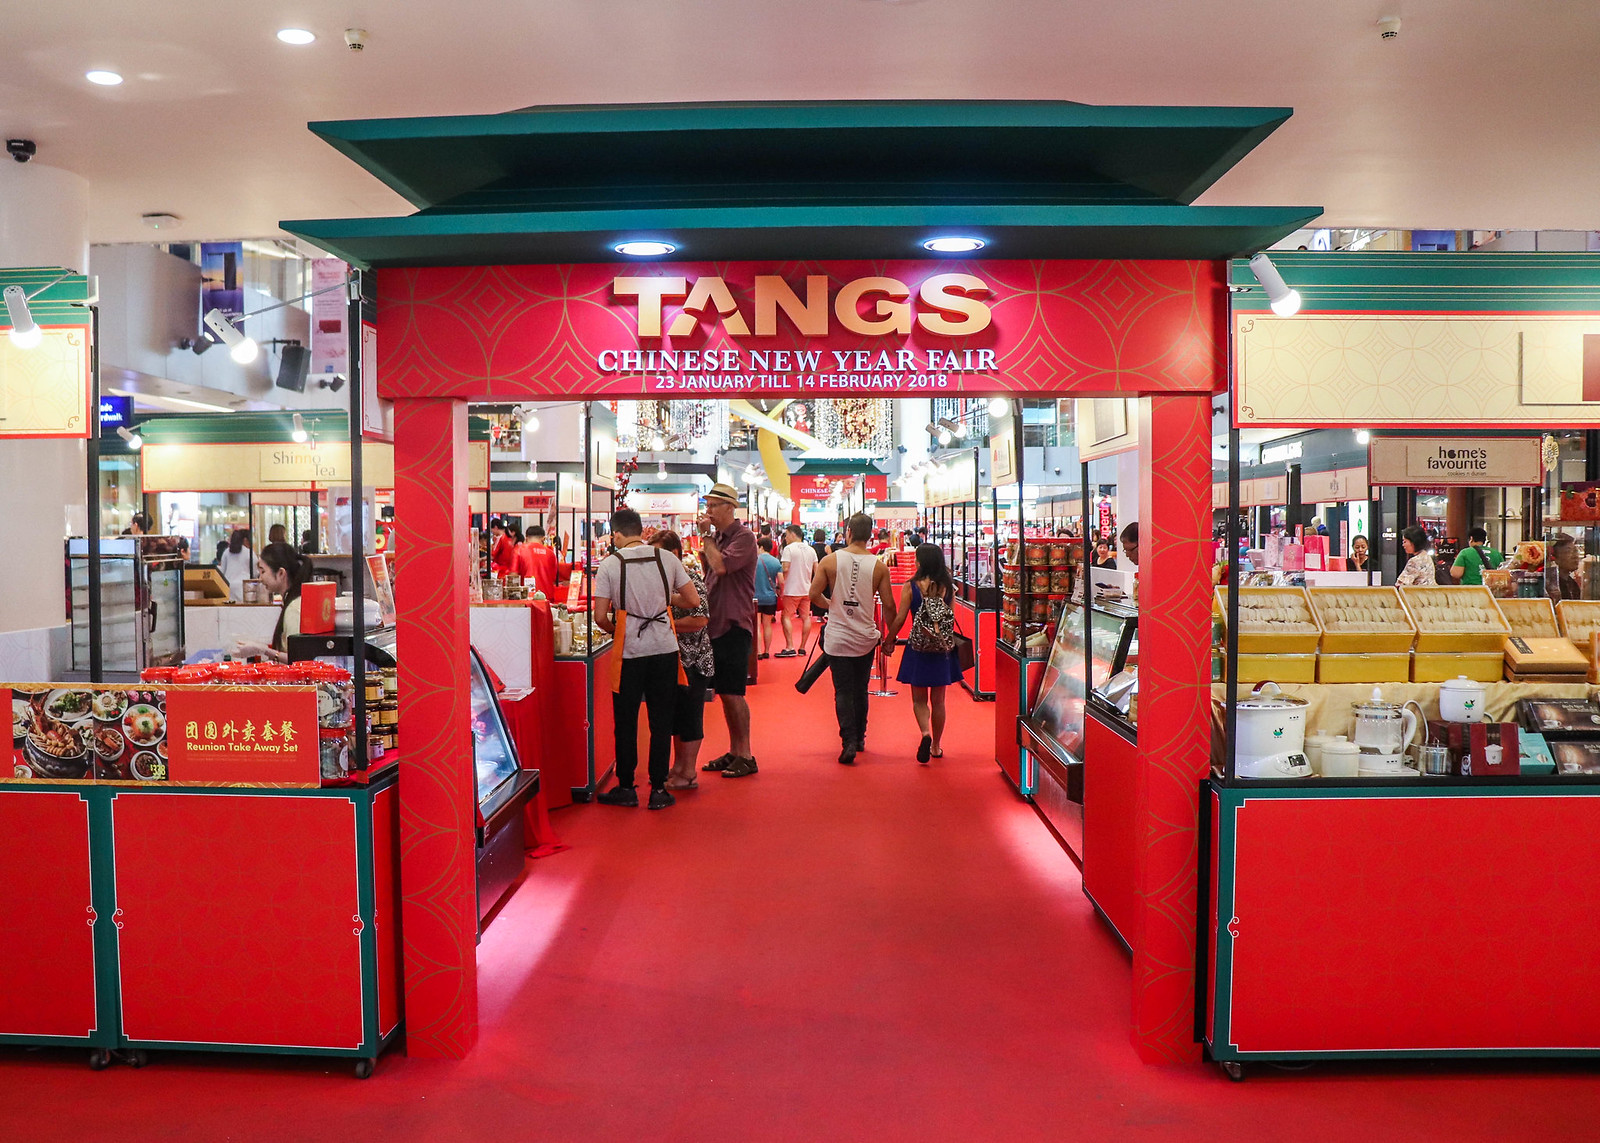 tangs cny fair 2018-1